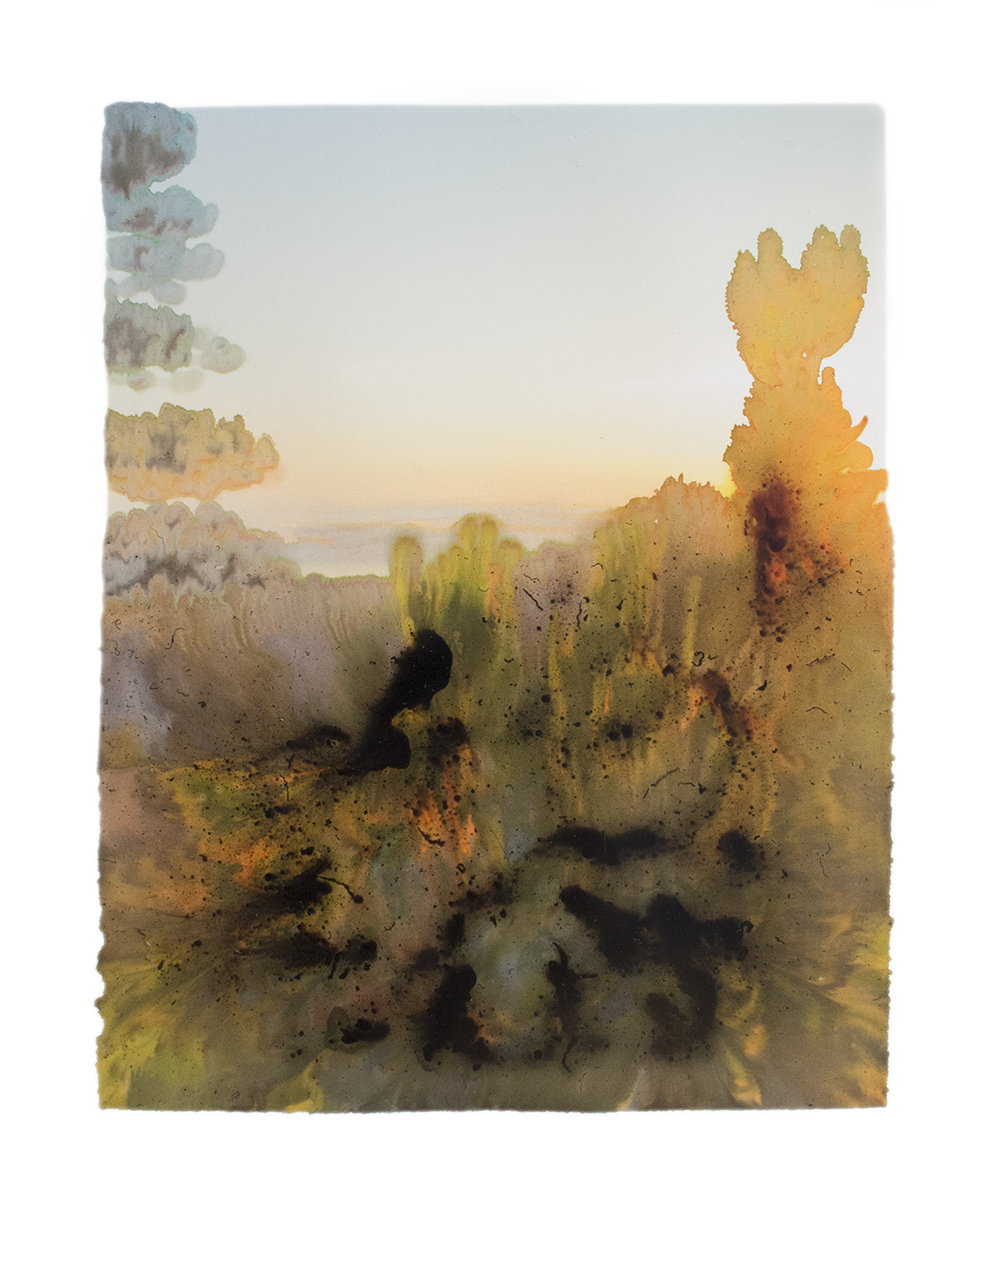 Big Sur, CA,Archival Pigment Print Photograph, unique, 2015 [from the series Subject to Change]